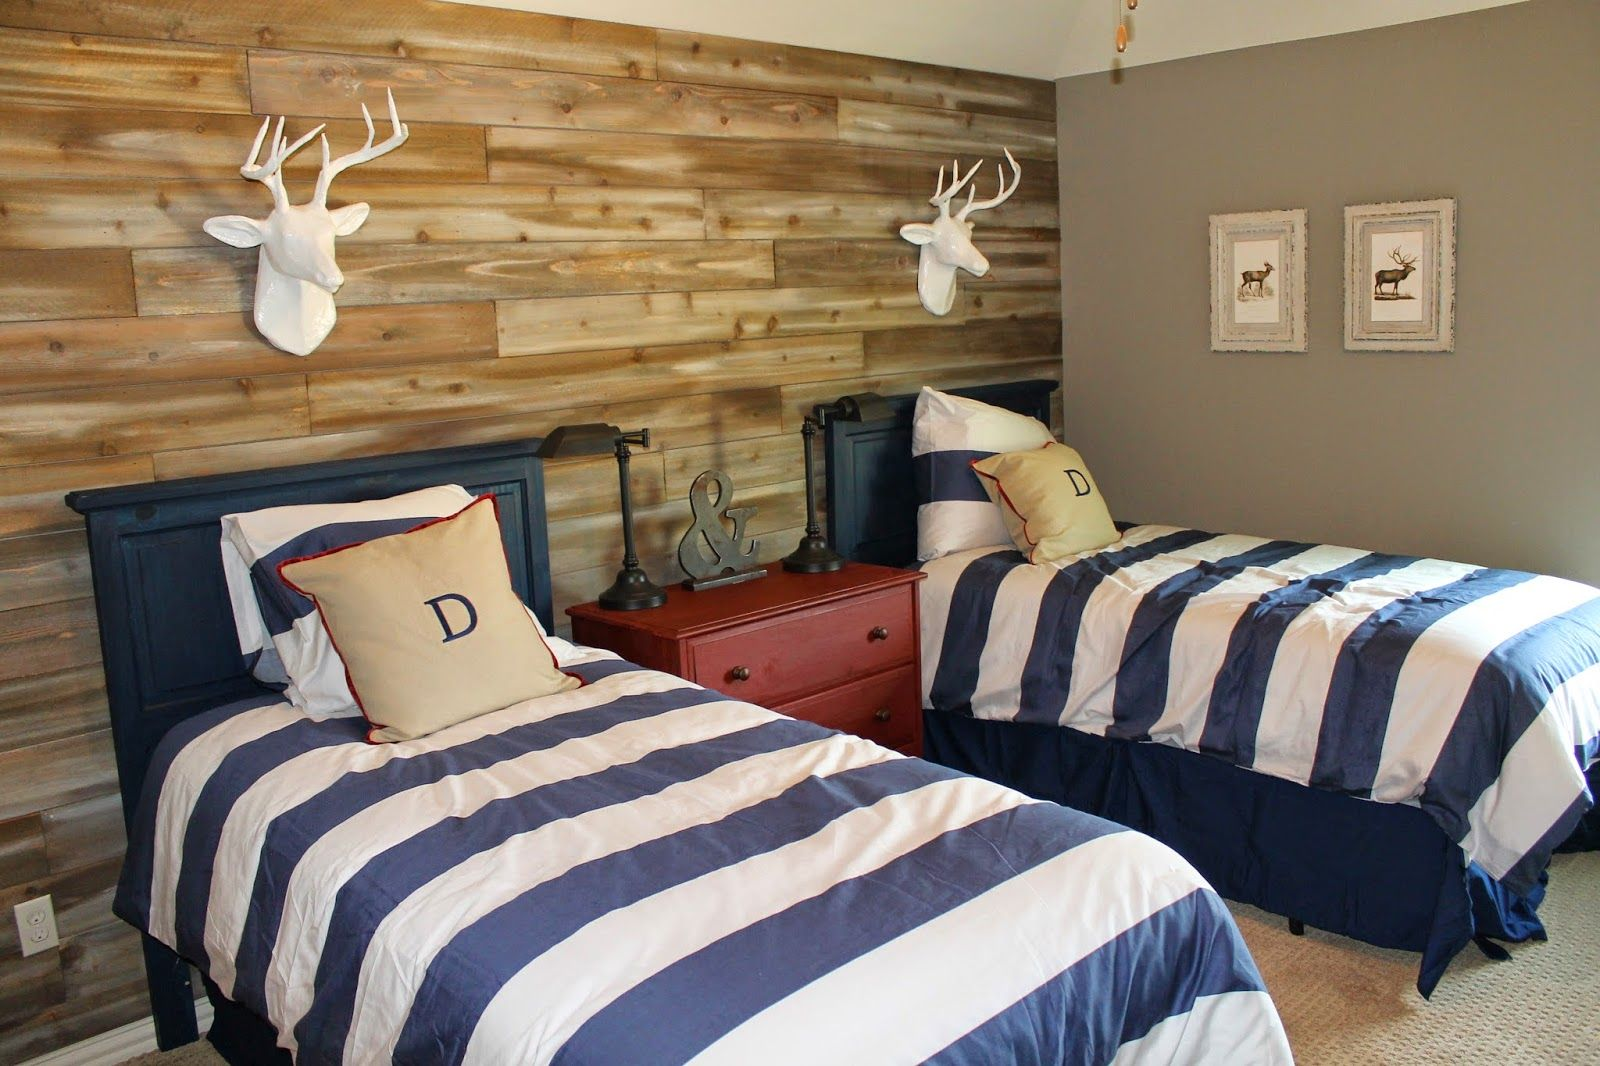 Wood Feature Walls Woodland Themed Boys Room Shared Space Two